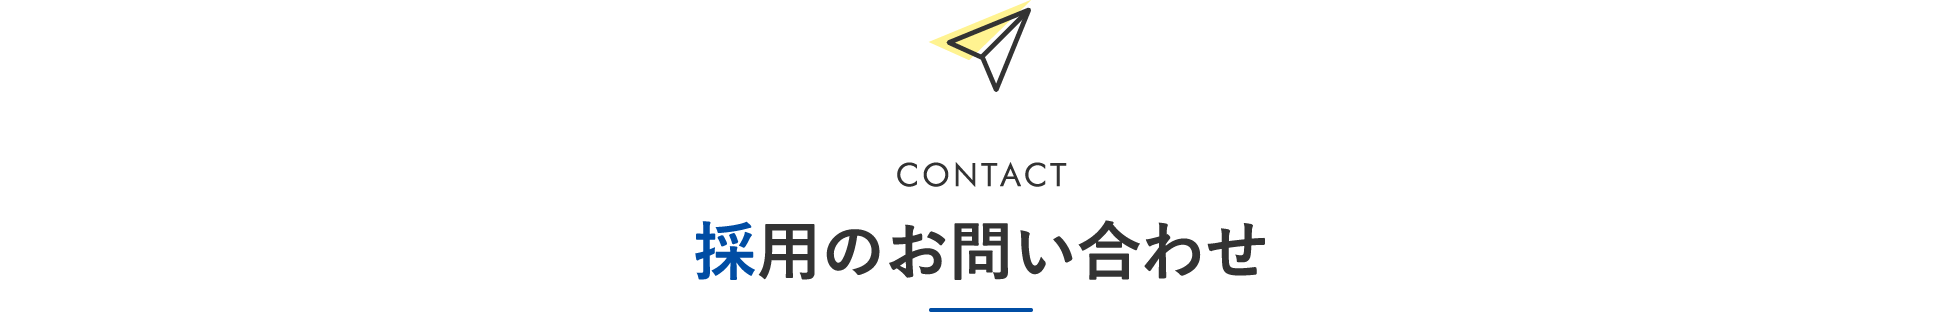 CONTACT 採用のお問い合わせ